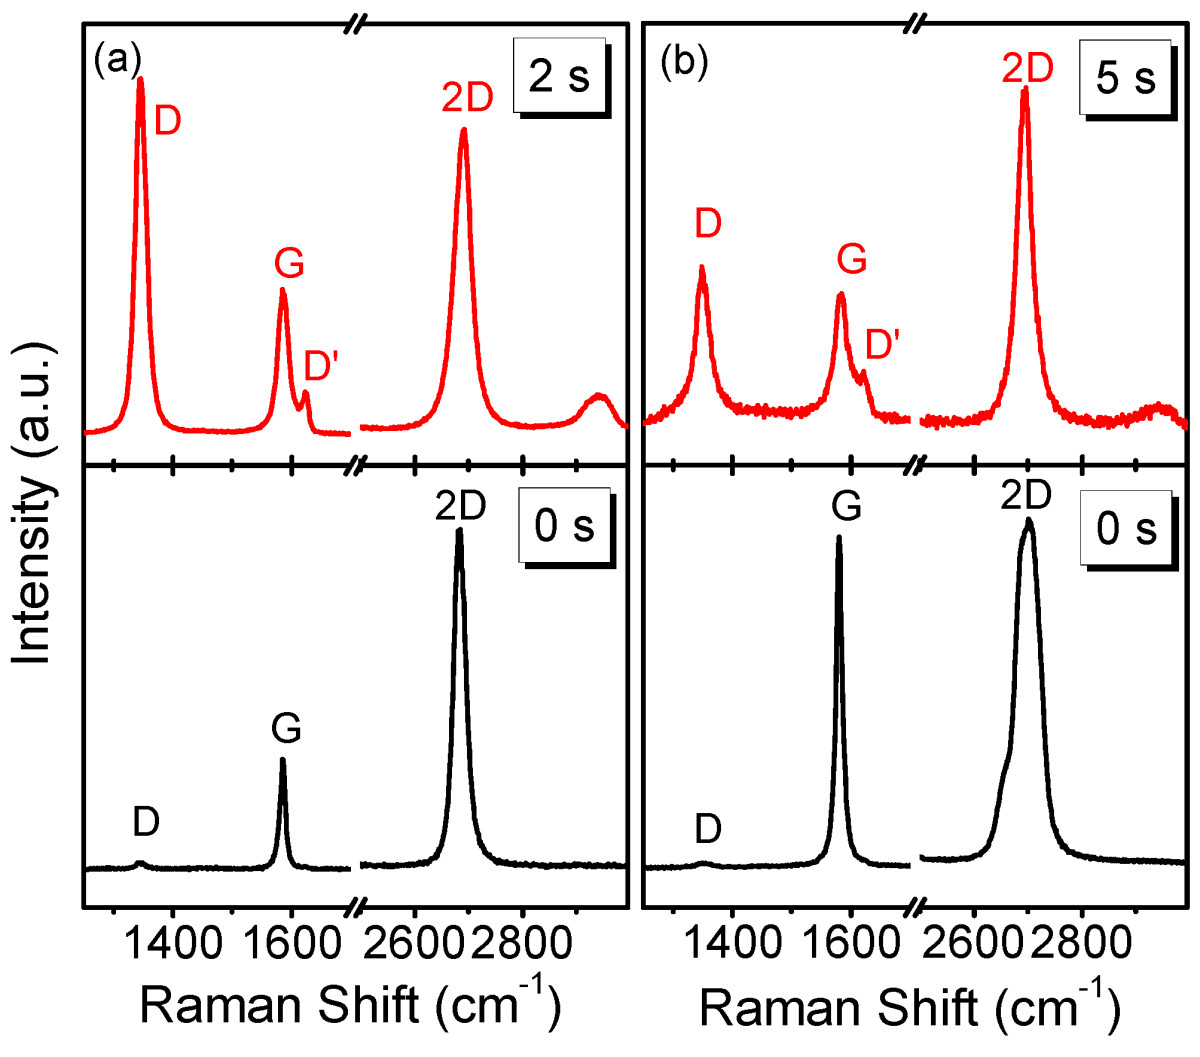 Graphene Bands: Thinning And Functionalization Of Few-layer Graphene